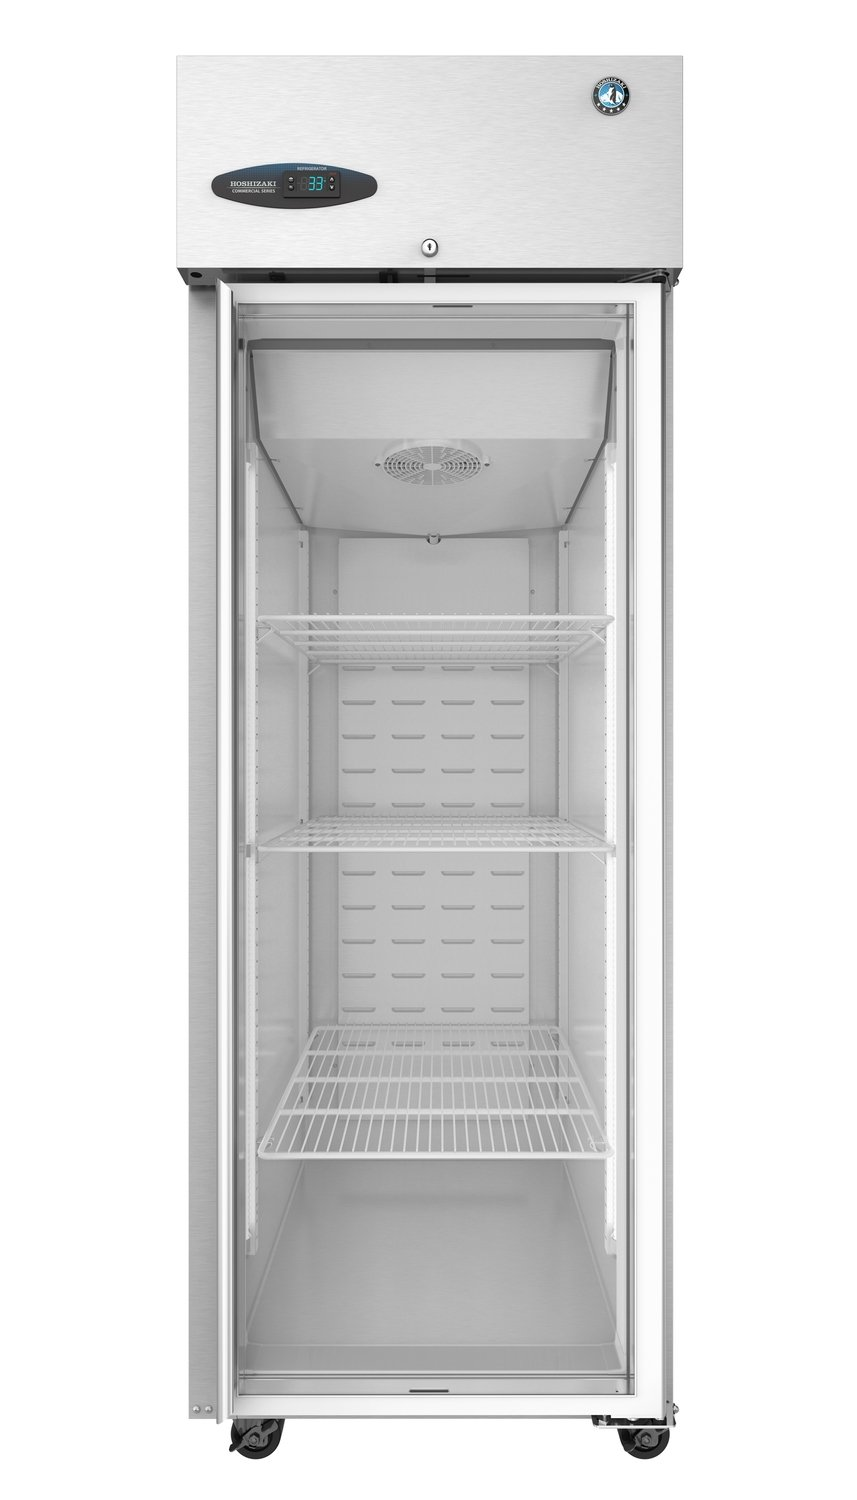 CF1S-FGE, Hoshizaki Freezer, Single Section Upright, Full Glass Door